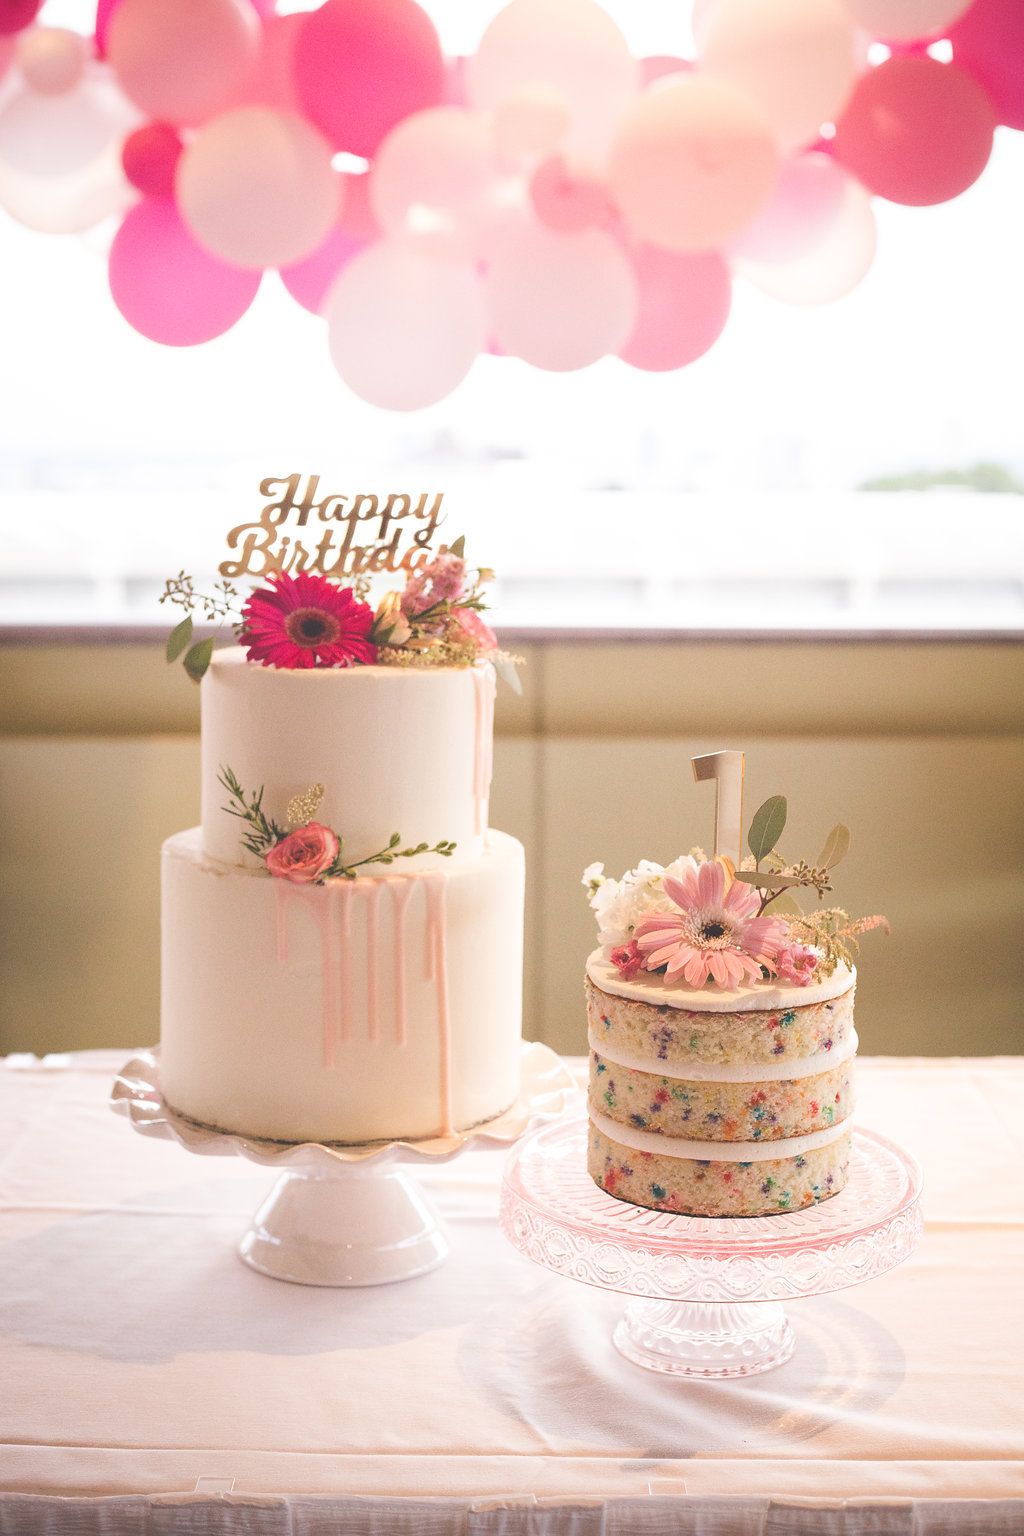 Cakes by Annie Bee Cakery, flowers by Willow Specialty Florist, and cake toppers by  My Minds' Eye.